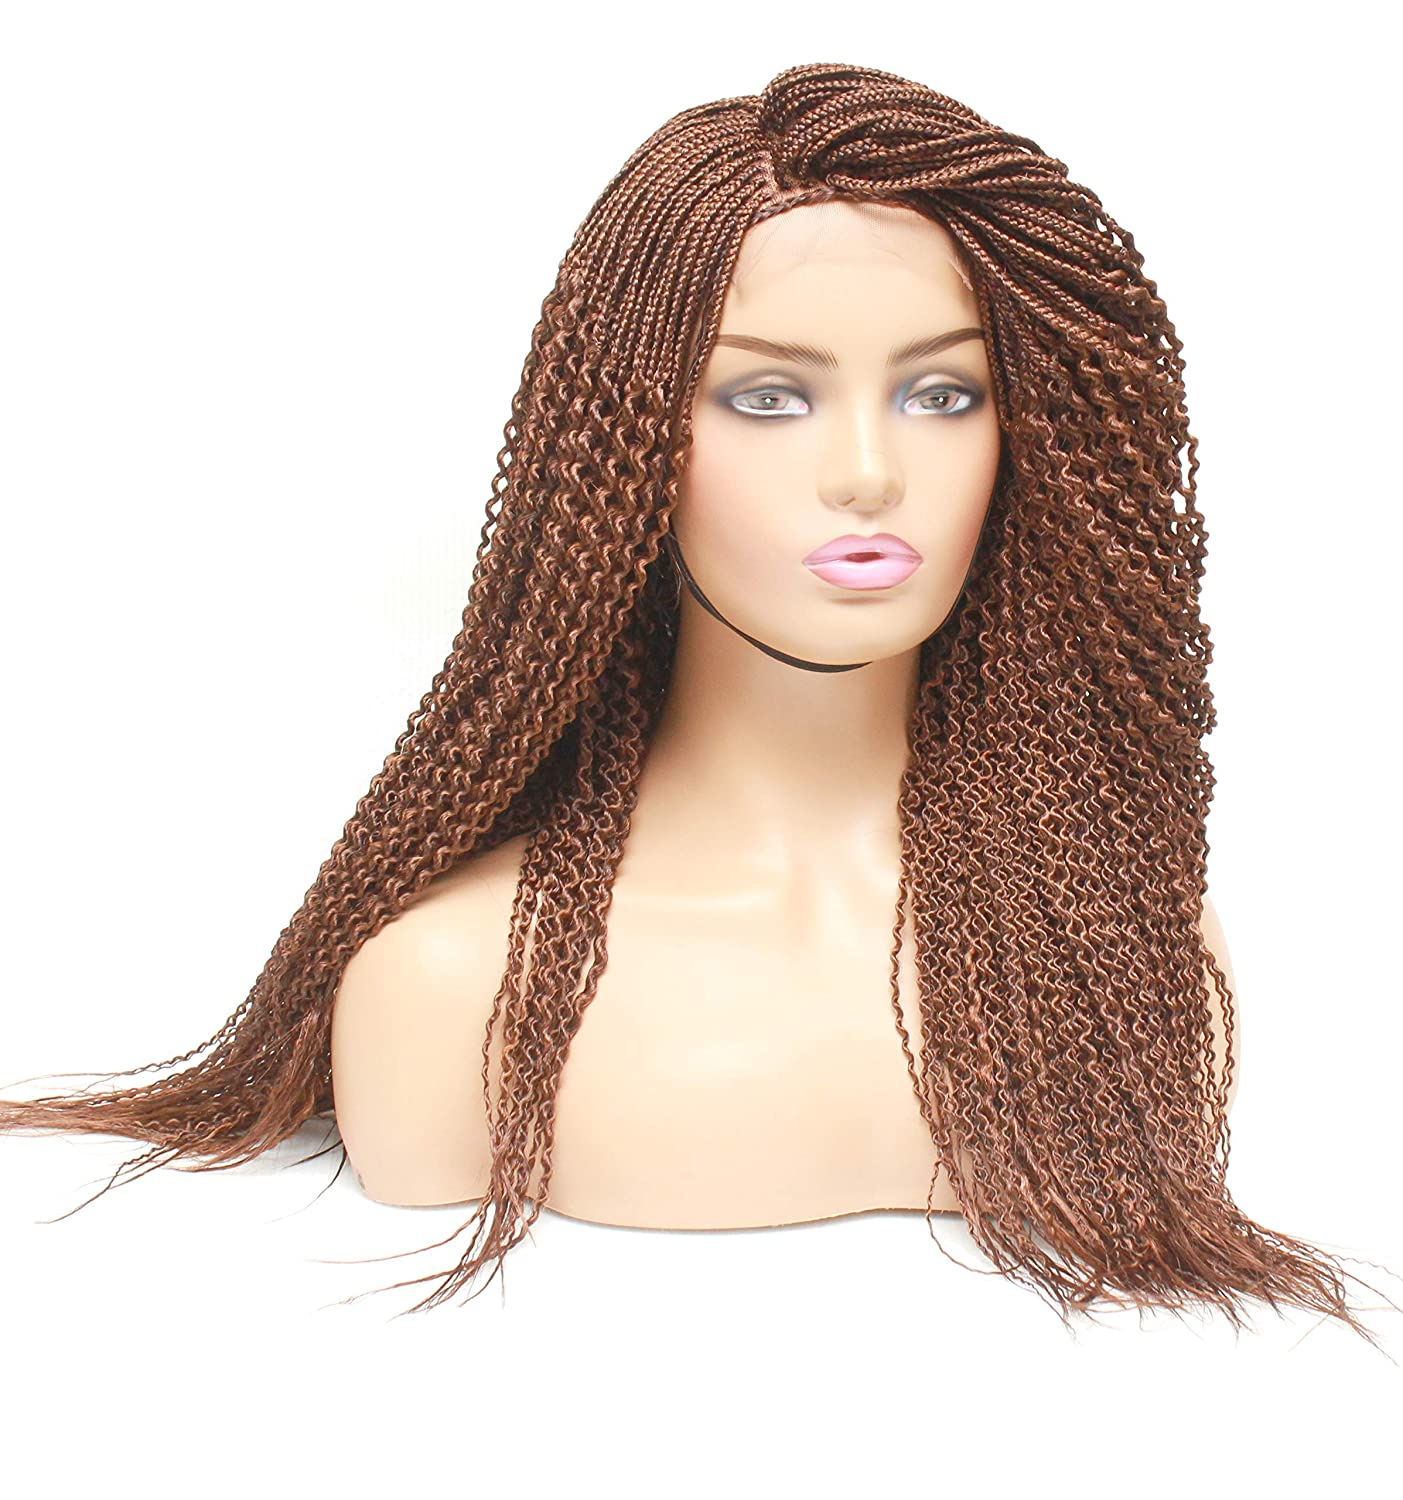 Braided Tucson Mall wigs for black women- Spiral twist Lace closure wig Same day shipping wig-